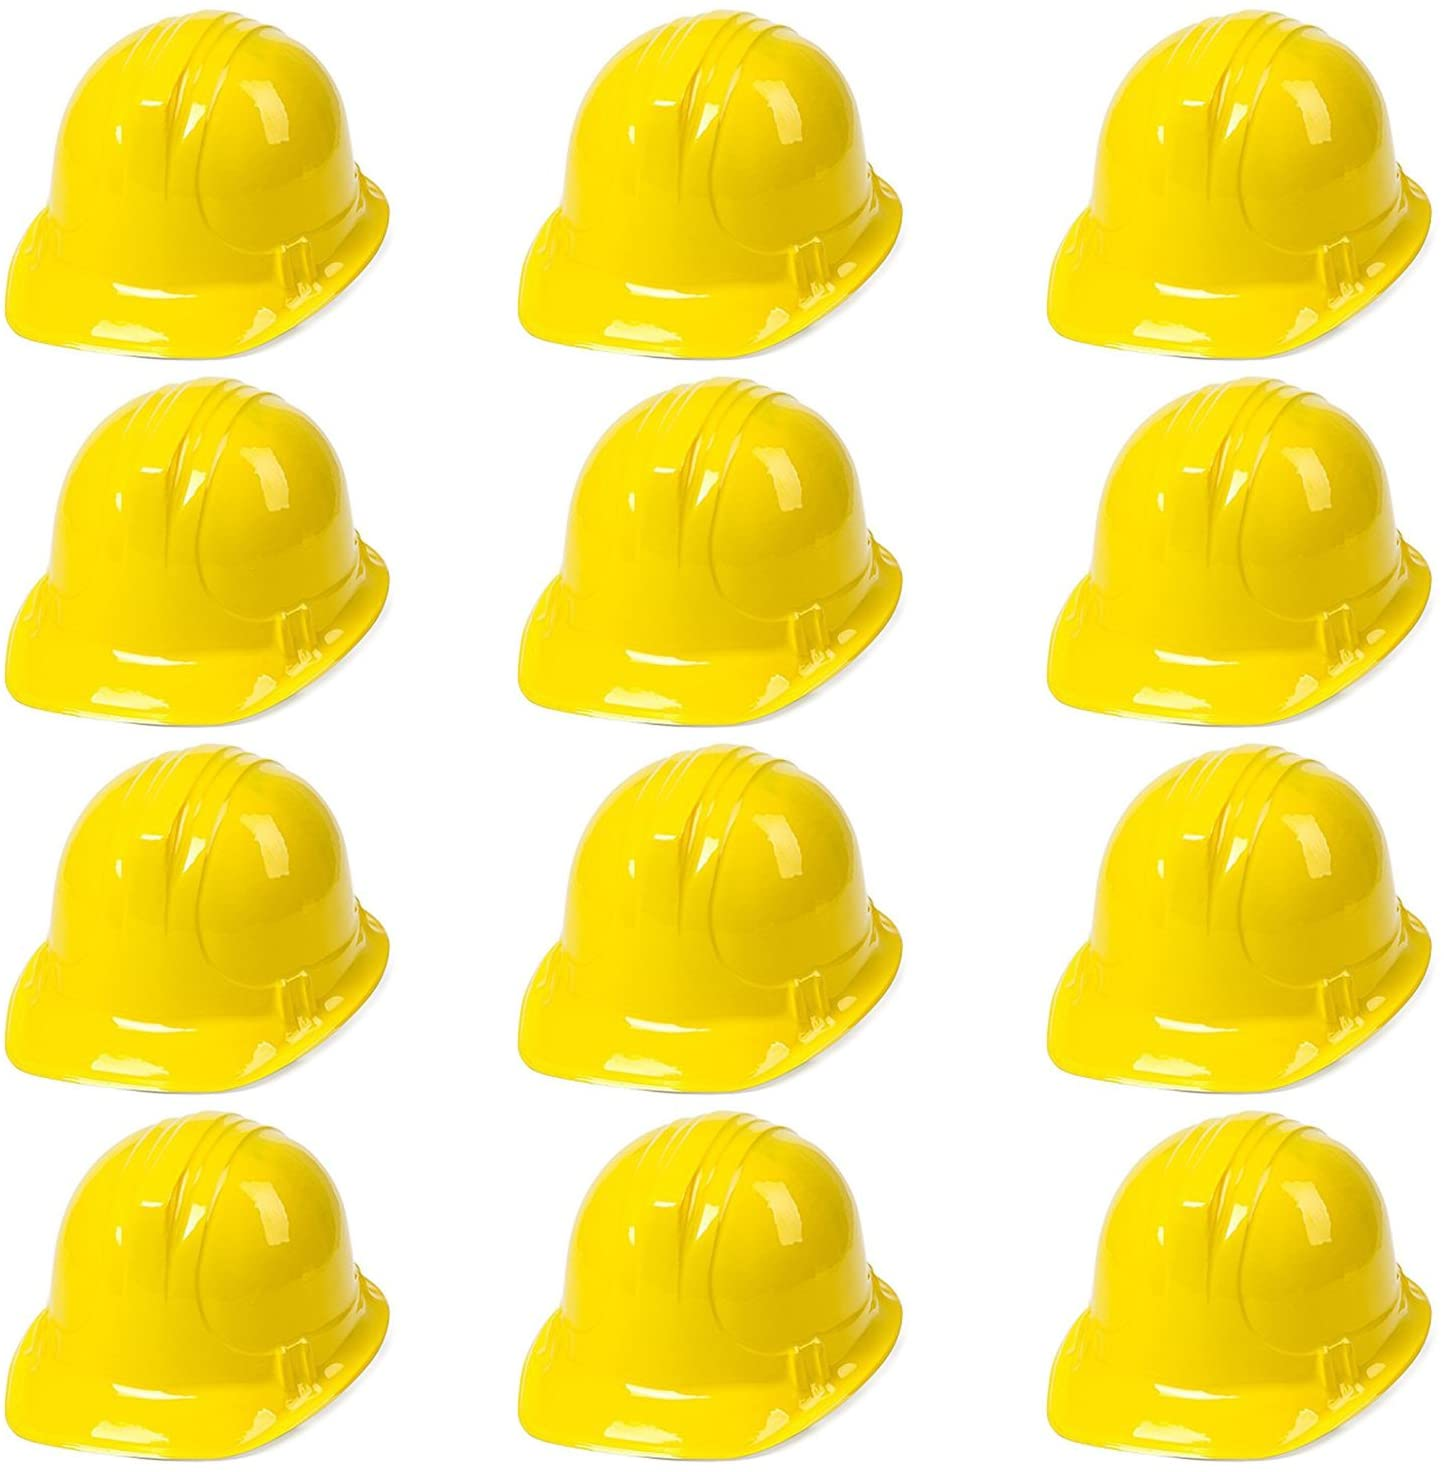 Anapoliz Yellow Construction Hats Toy for Kids Dress Up Theme Party Fun Pack   12 - Pack